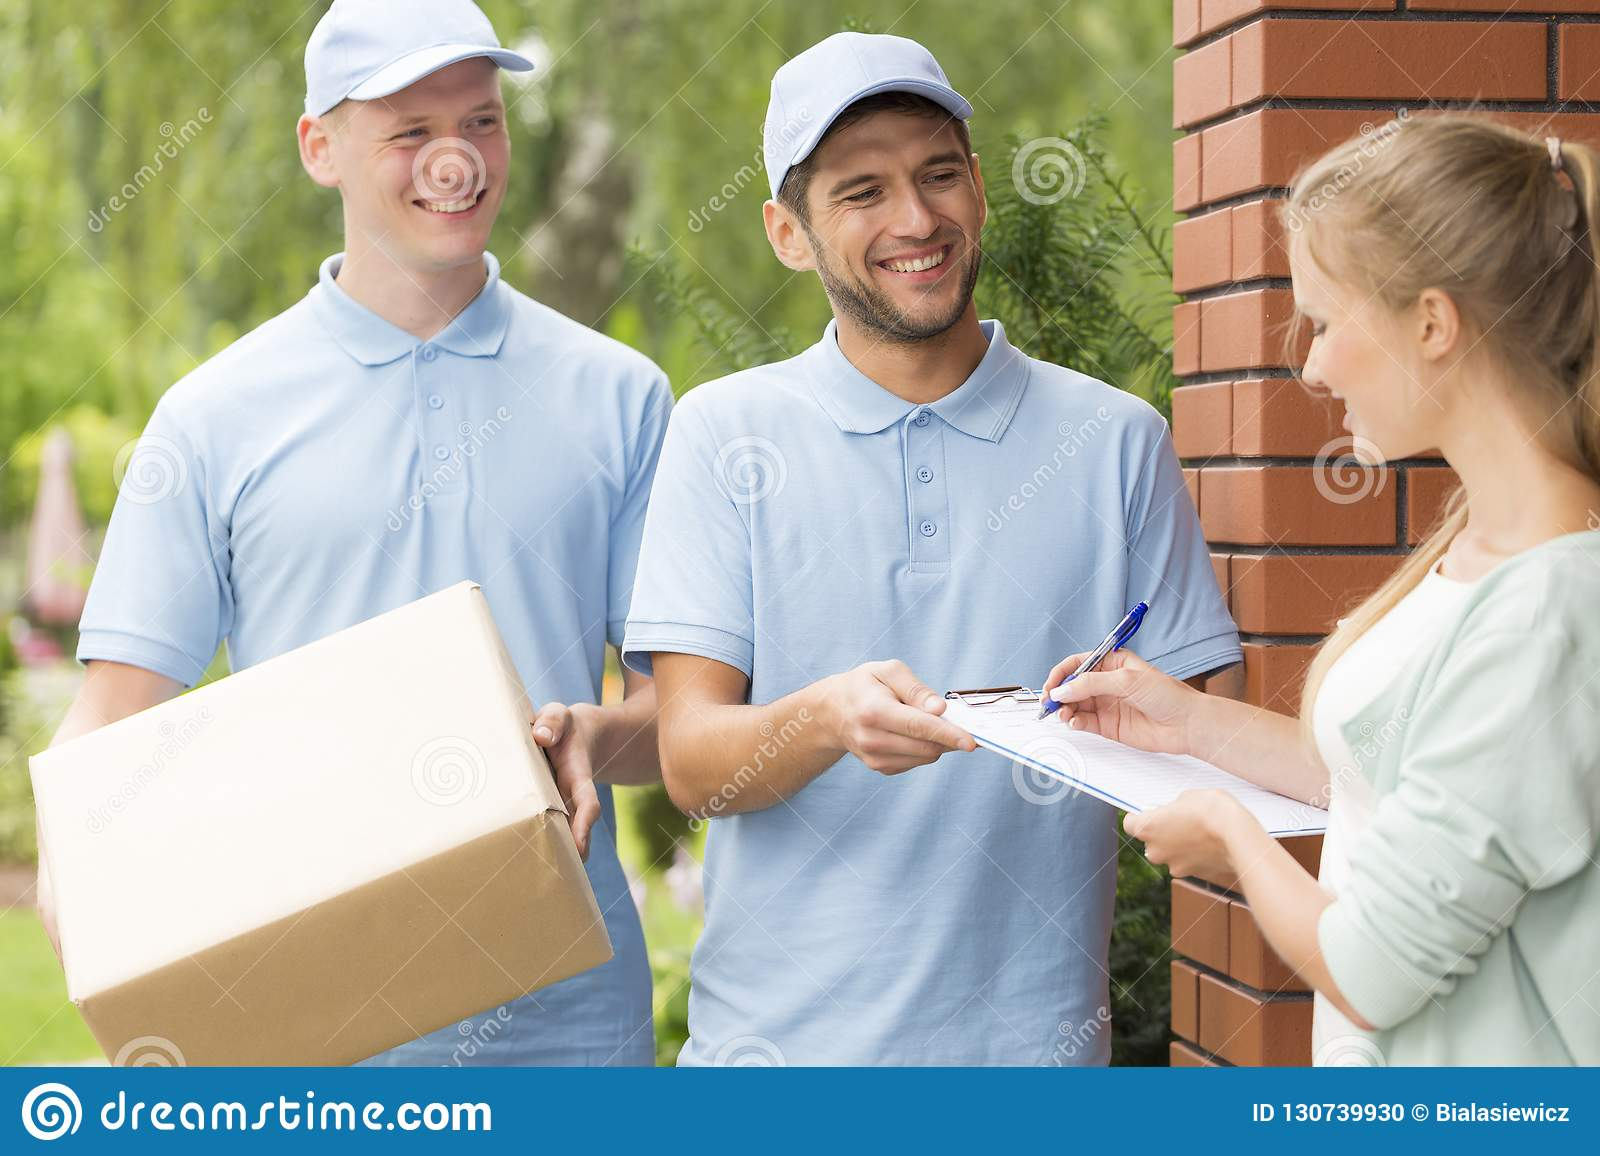 Handsome couriers in blue uniforms delivering a parcel to a young pretty woman